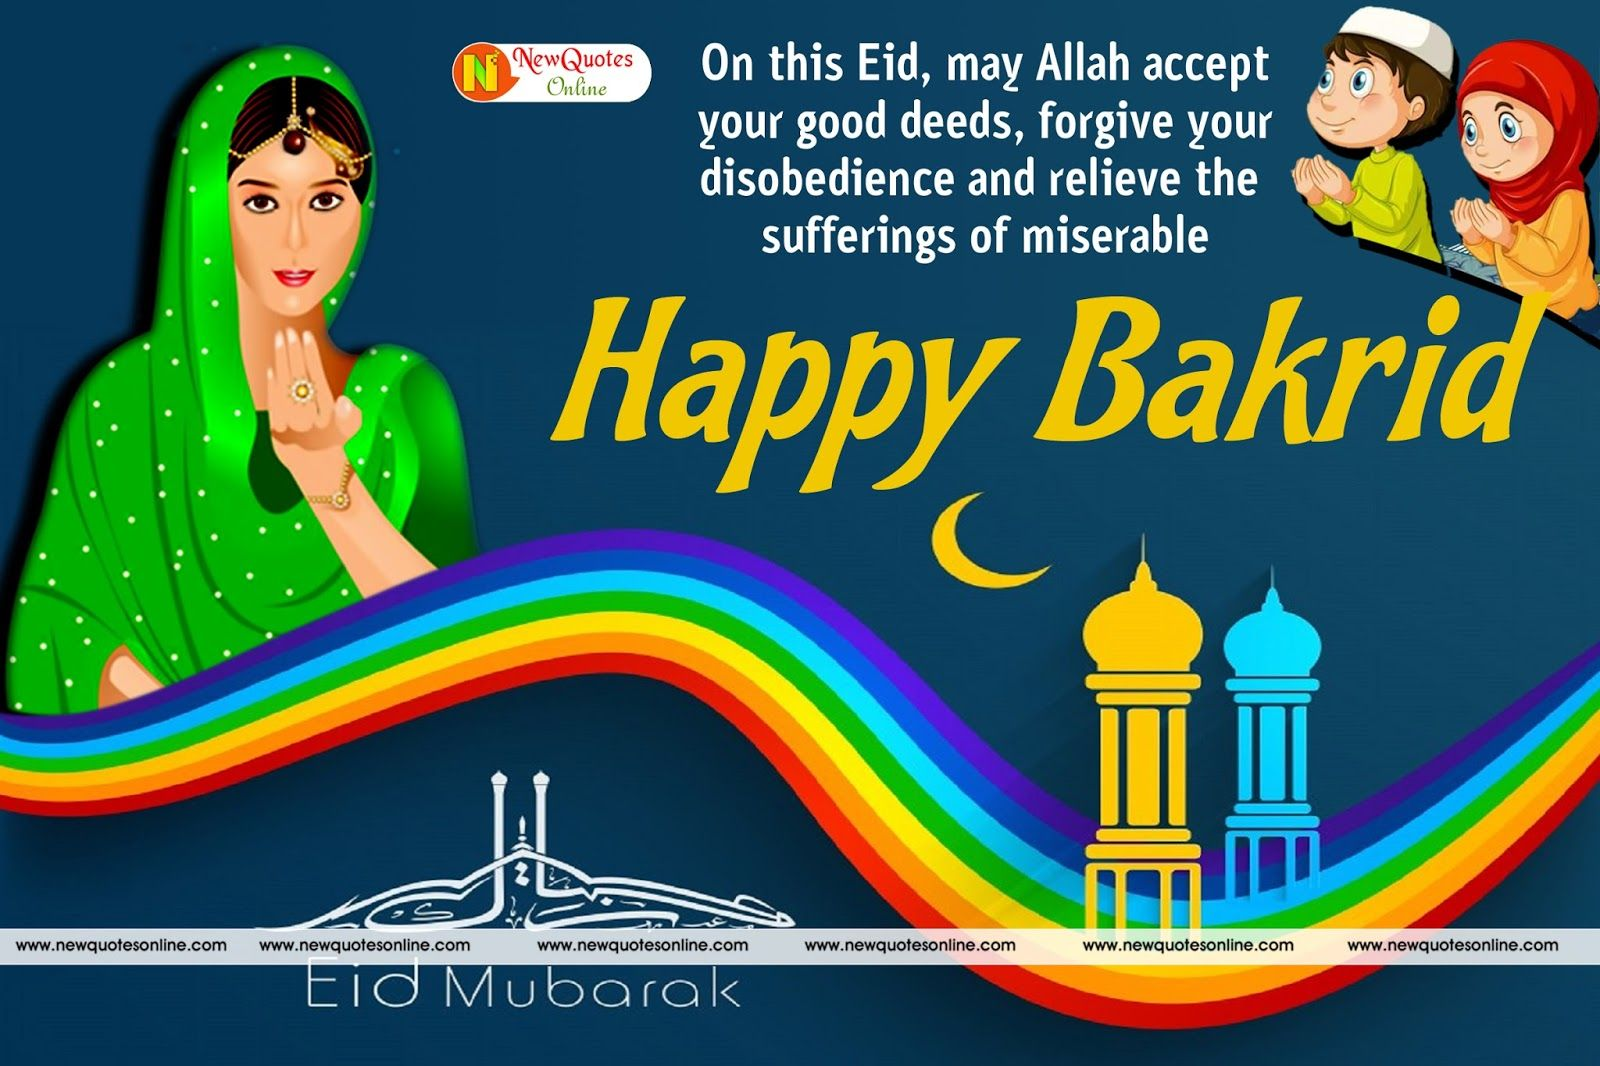 Happy eid ul adha mubarak greeting cards eid ul adha mubarak new quotes best wishes on happy bakrid beautiful greetings to all muslim friends with images kristyandbryce Image collections